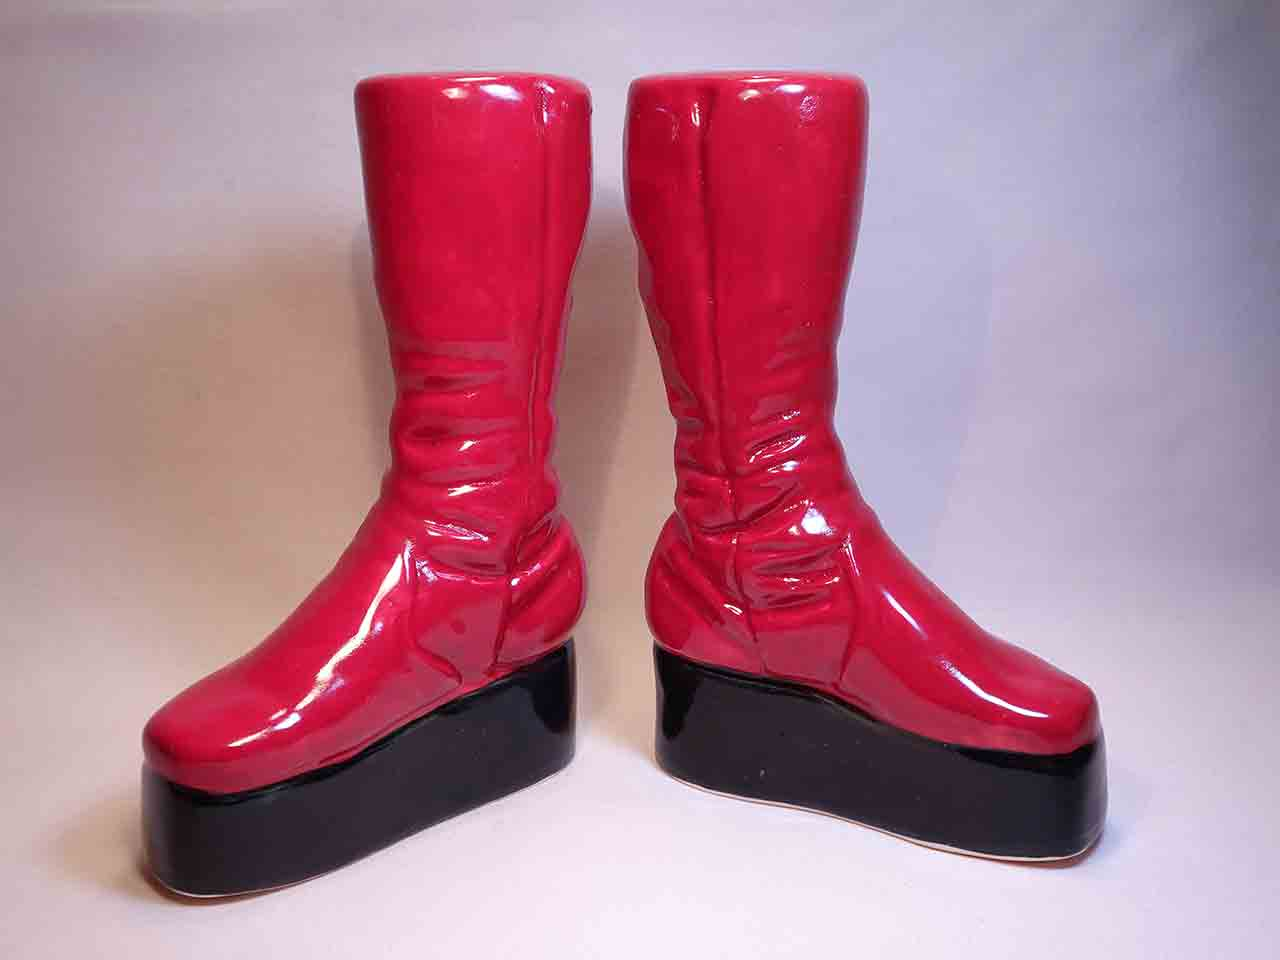 David Bowie's red boots by Gary Seymour